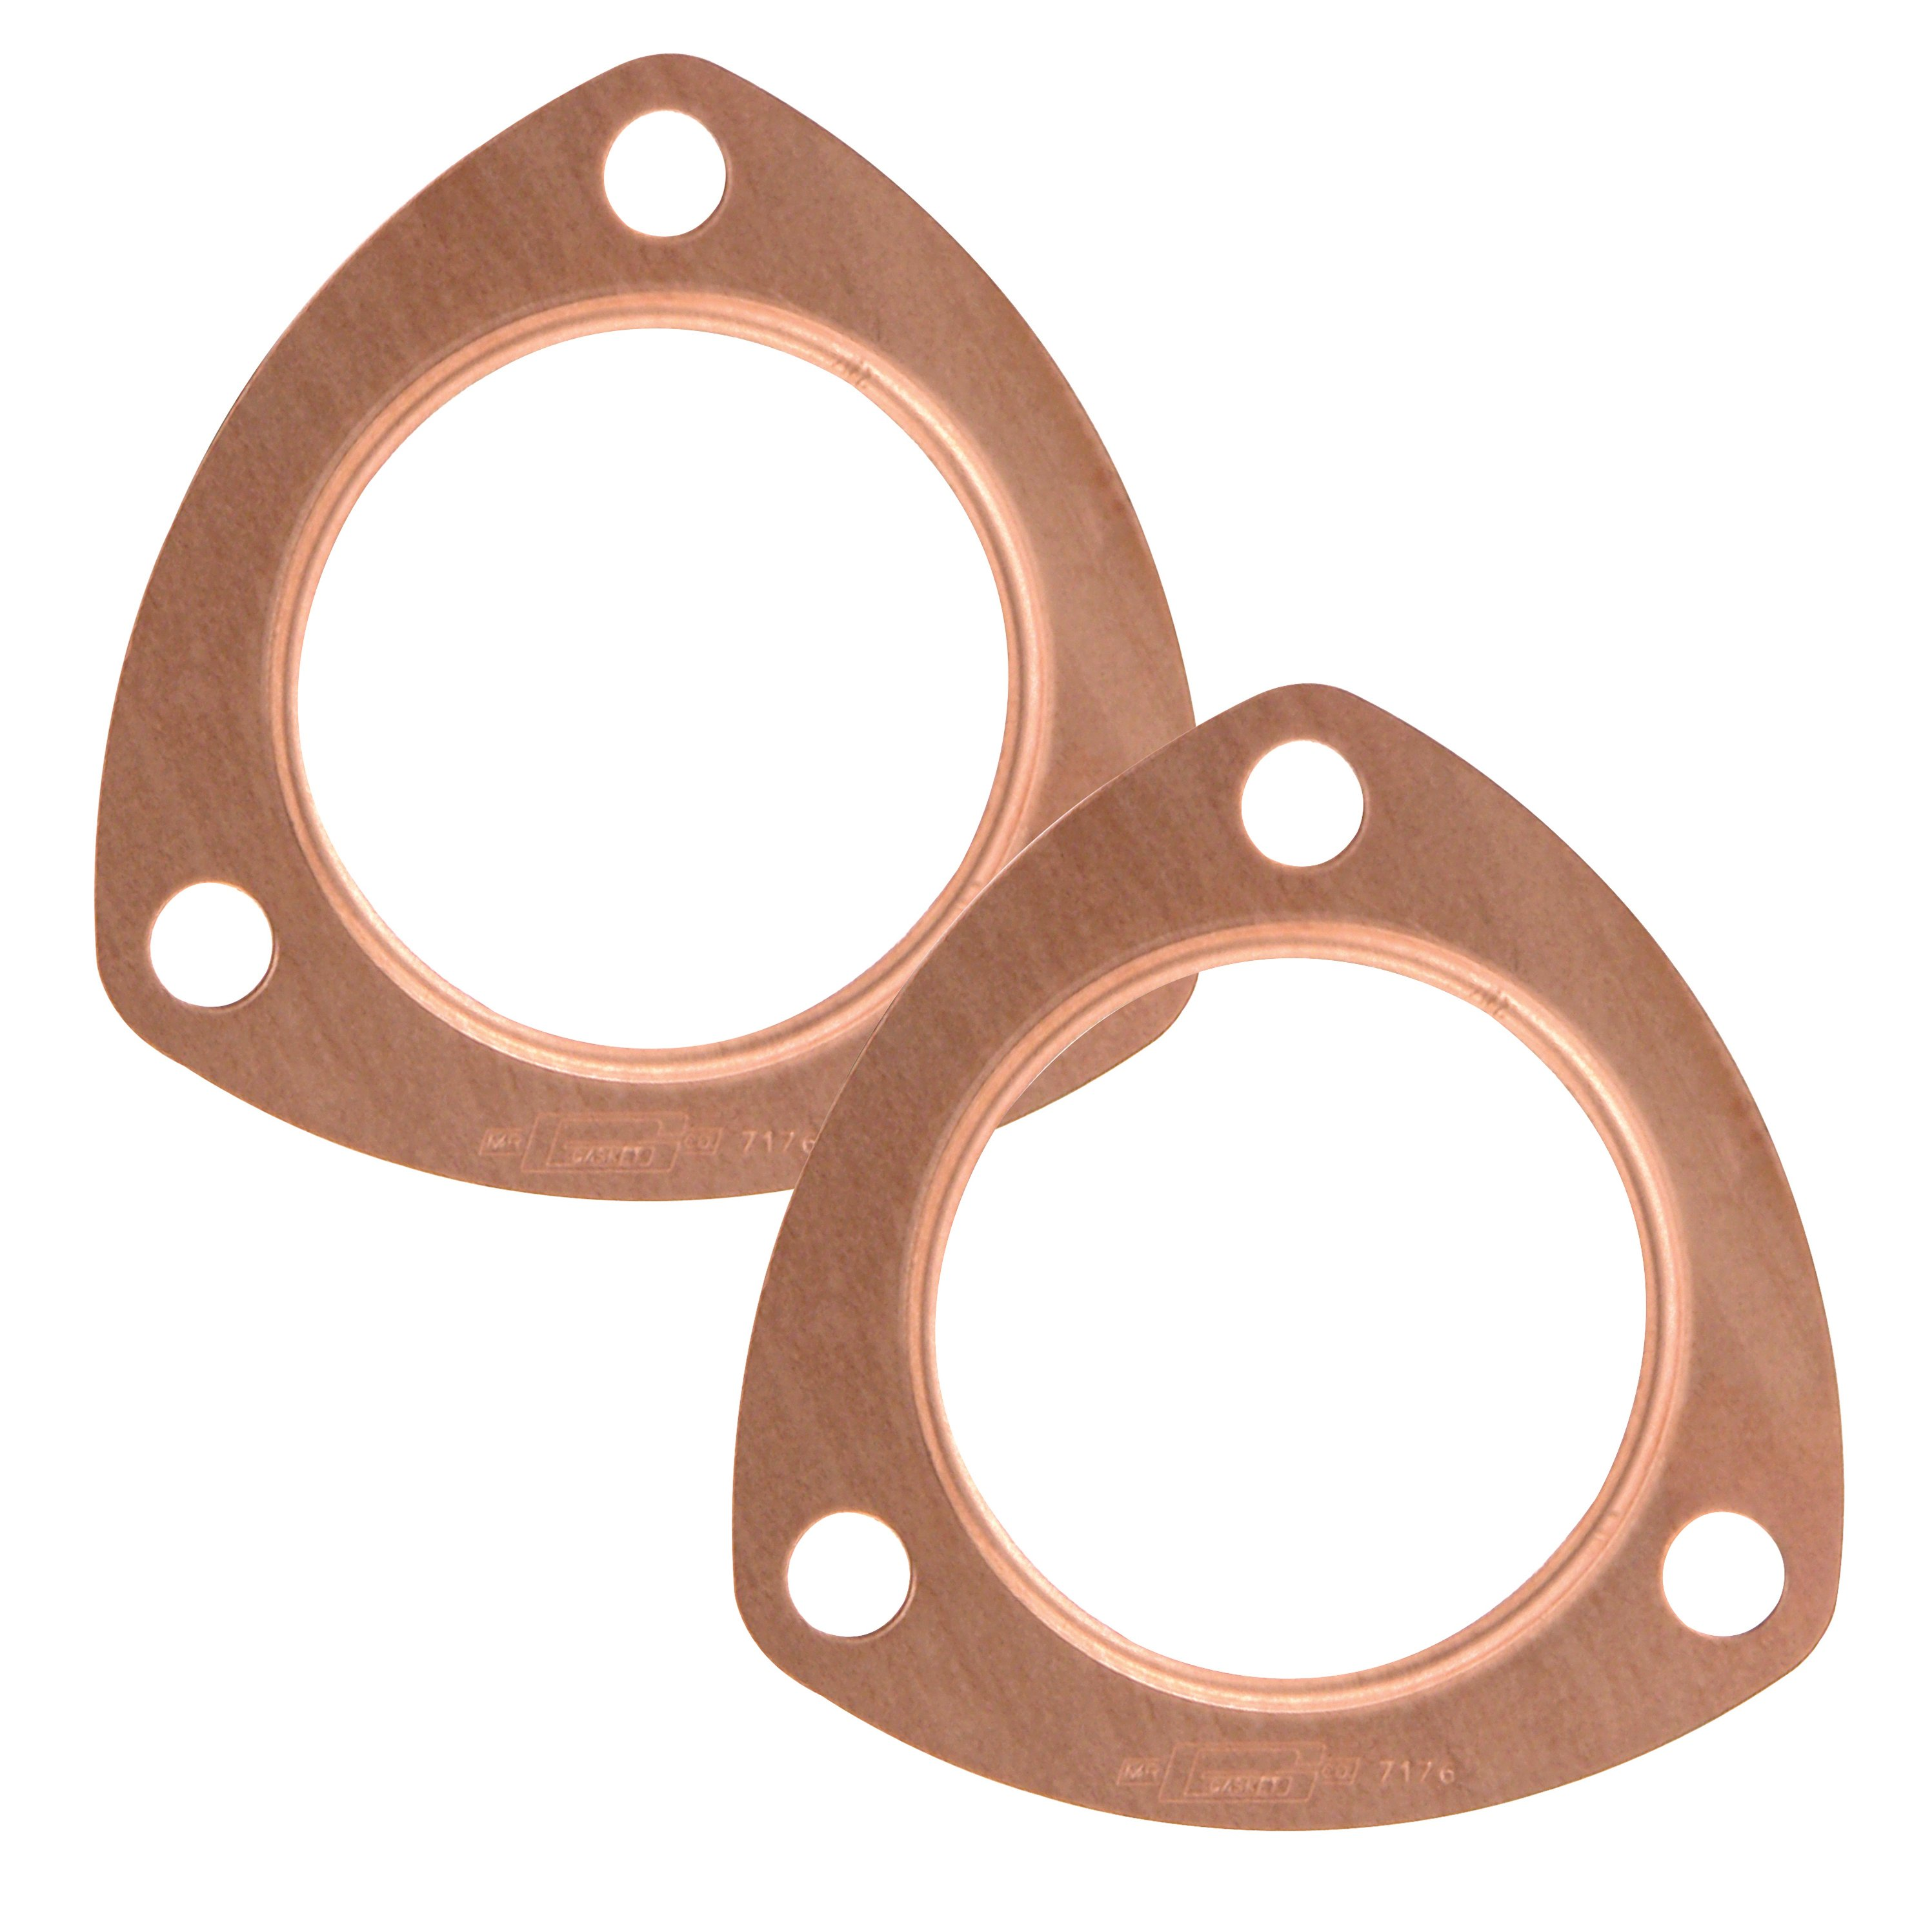 Mr Pair Gasket 7153 Copper Seal Exhaust Gaskets